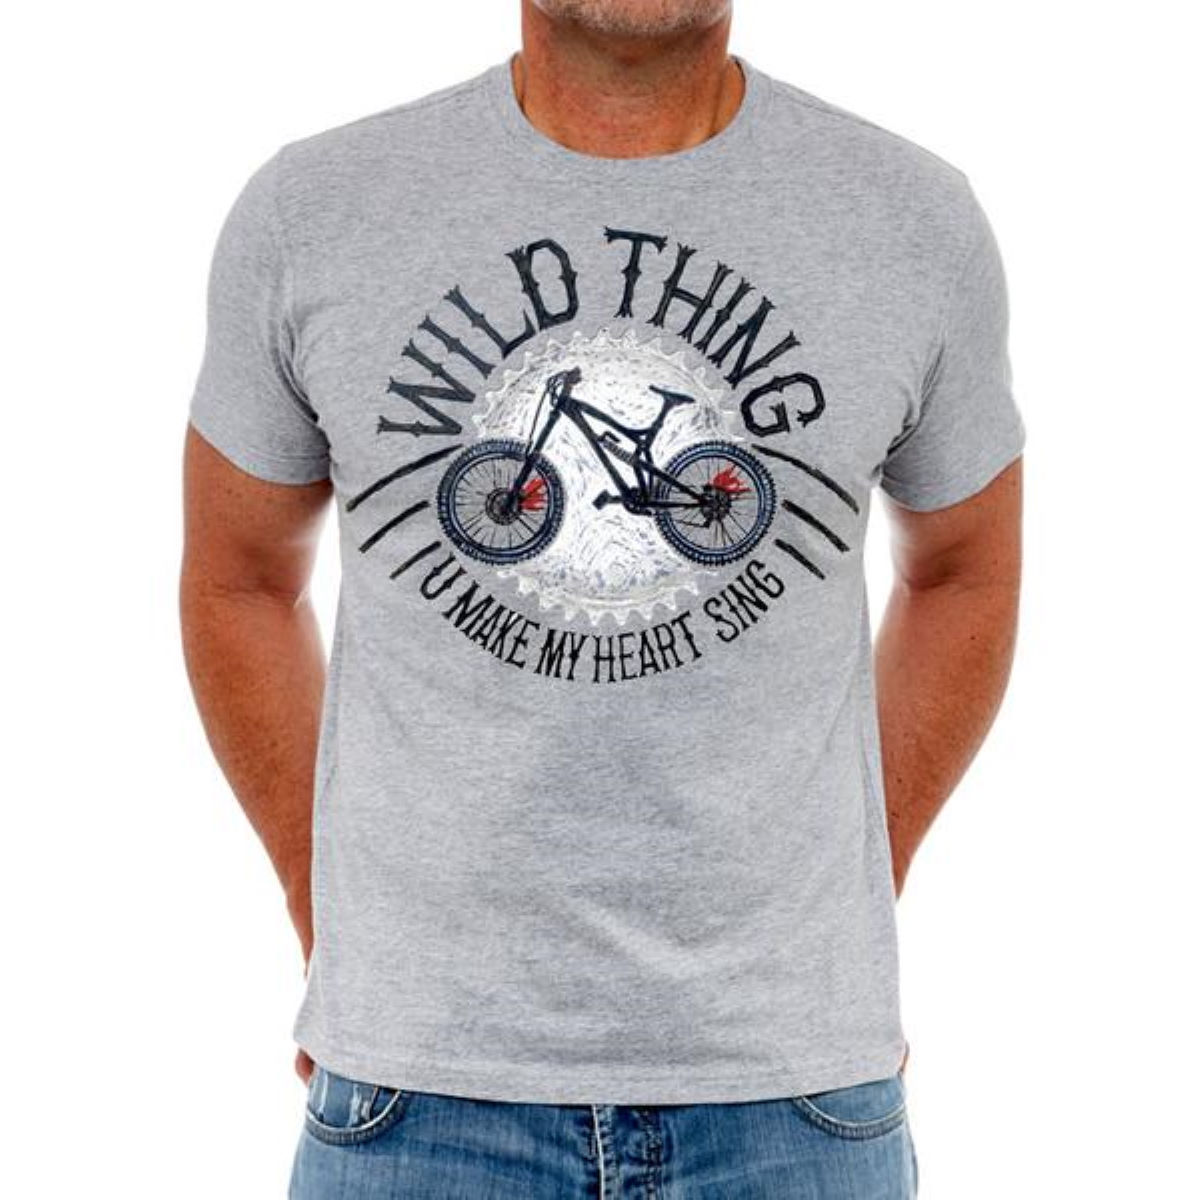 Cycology wild thing t shirt review for T shirt company reviews